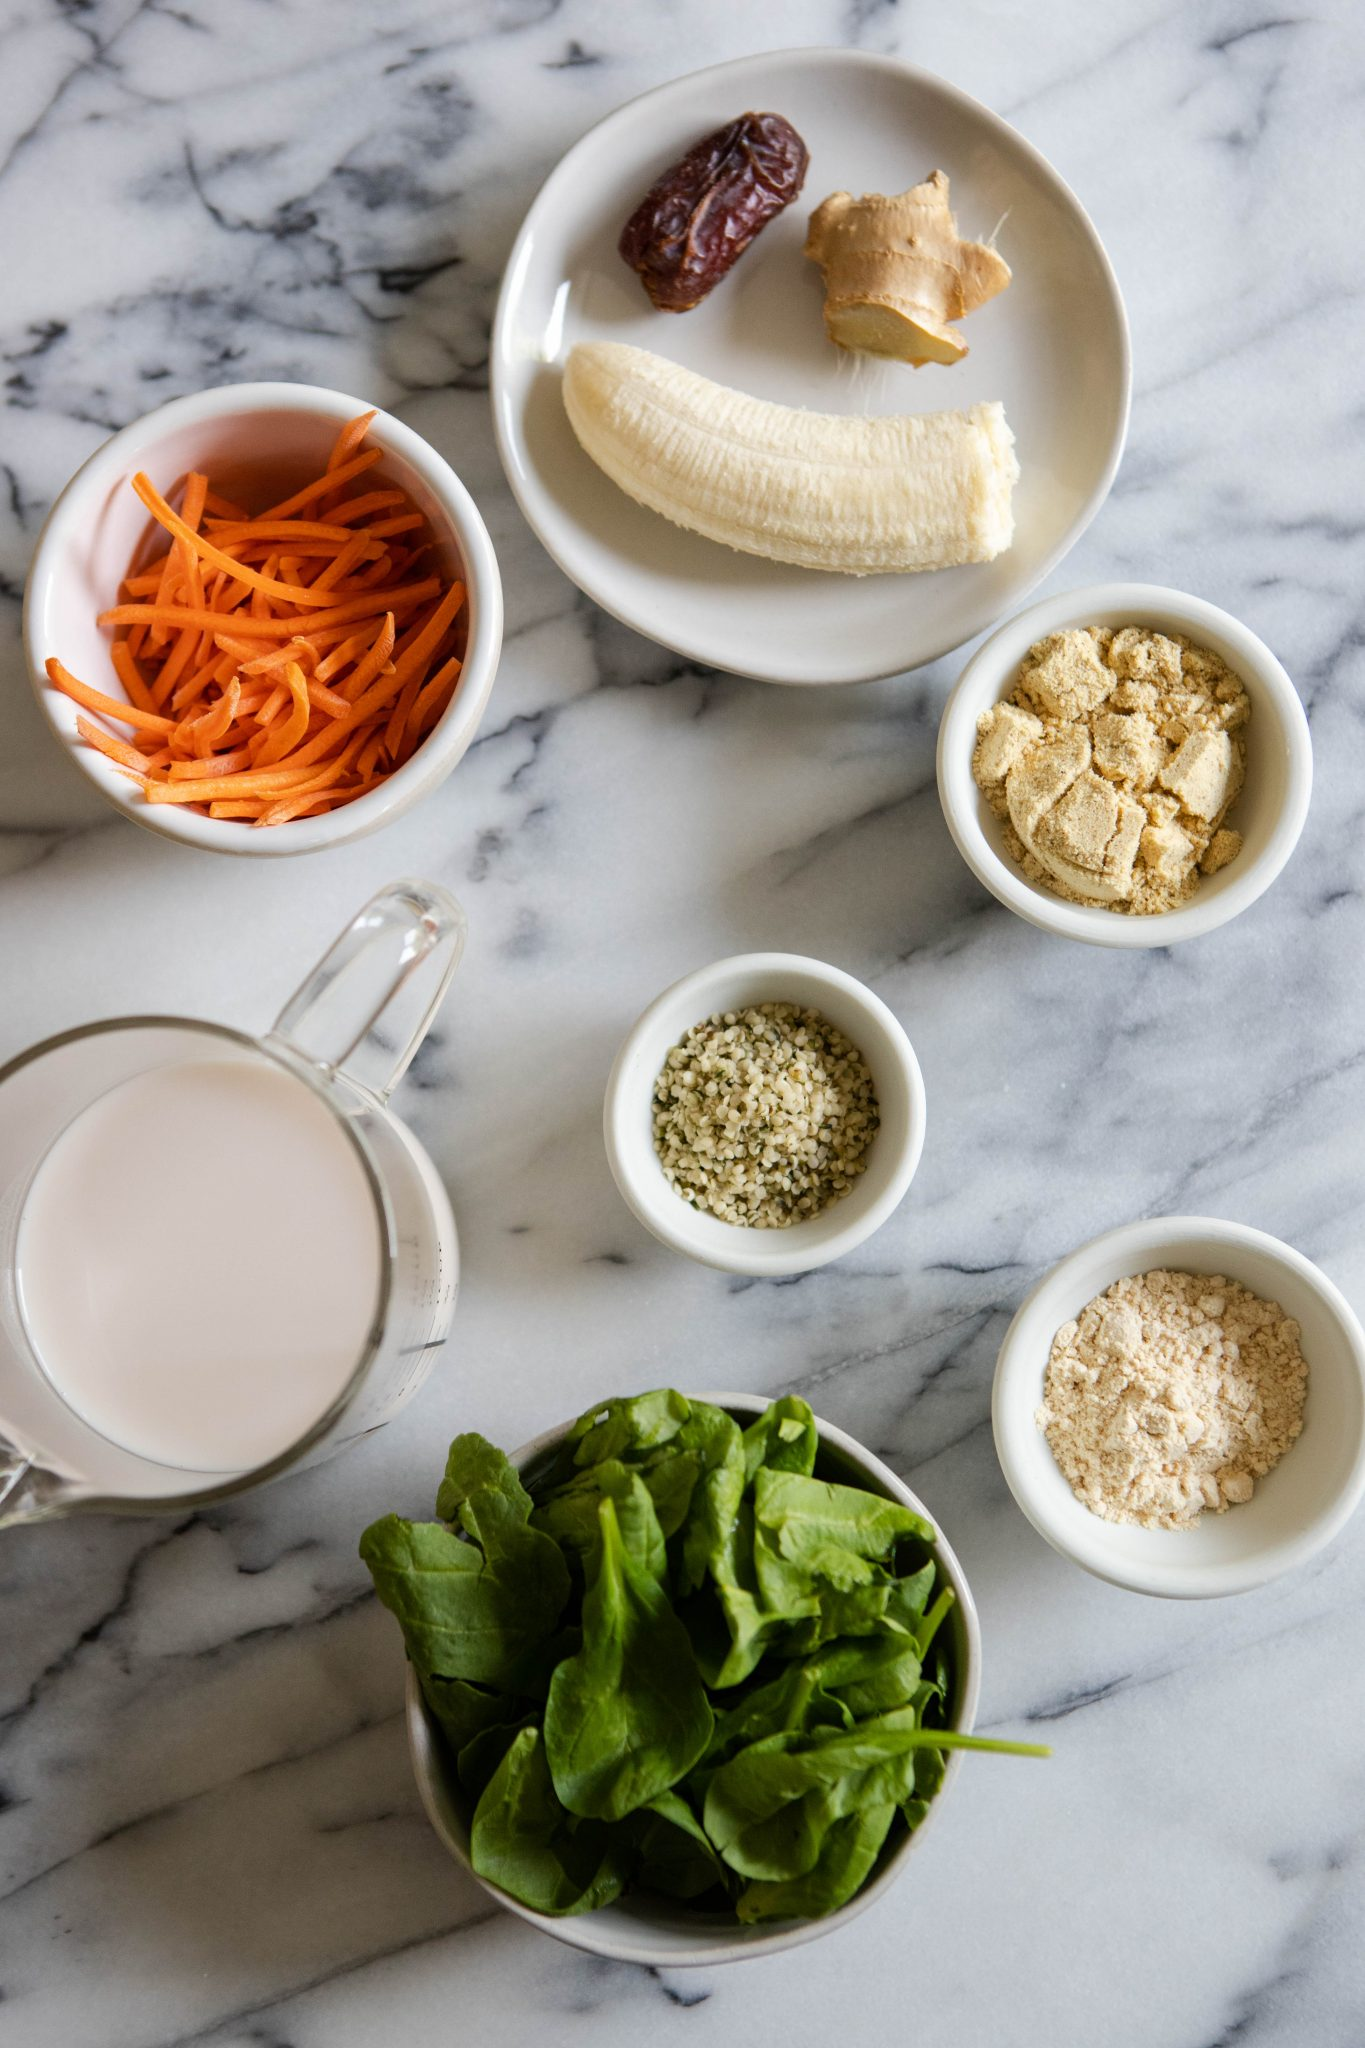 green smoothie ingredients banana, carrots, protein powder, spinach